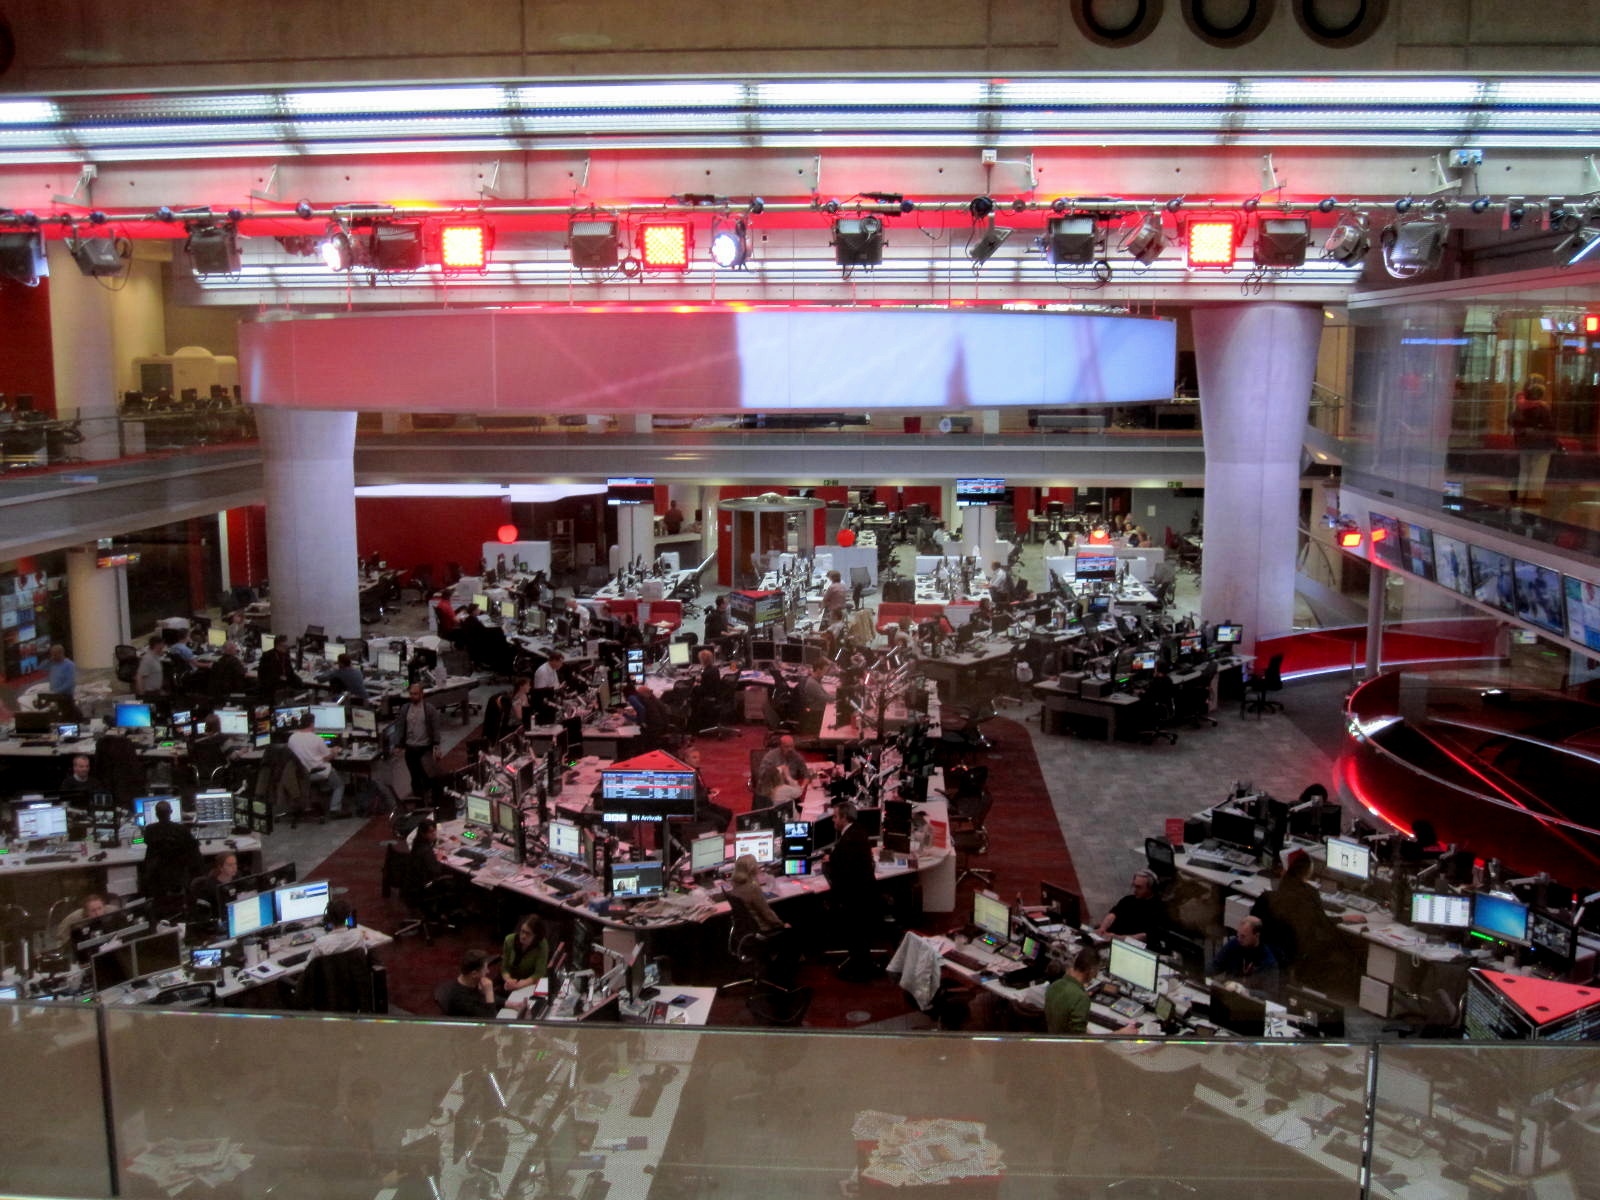 bbc broadcasting house tour - sat 27 apr 2013 | my blog - andrew ho